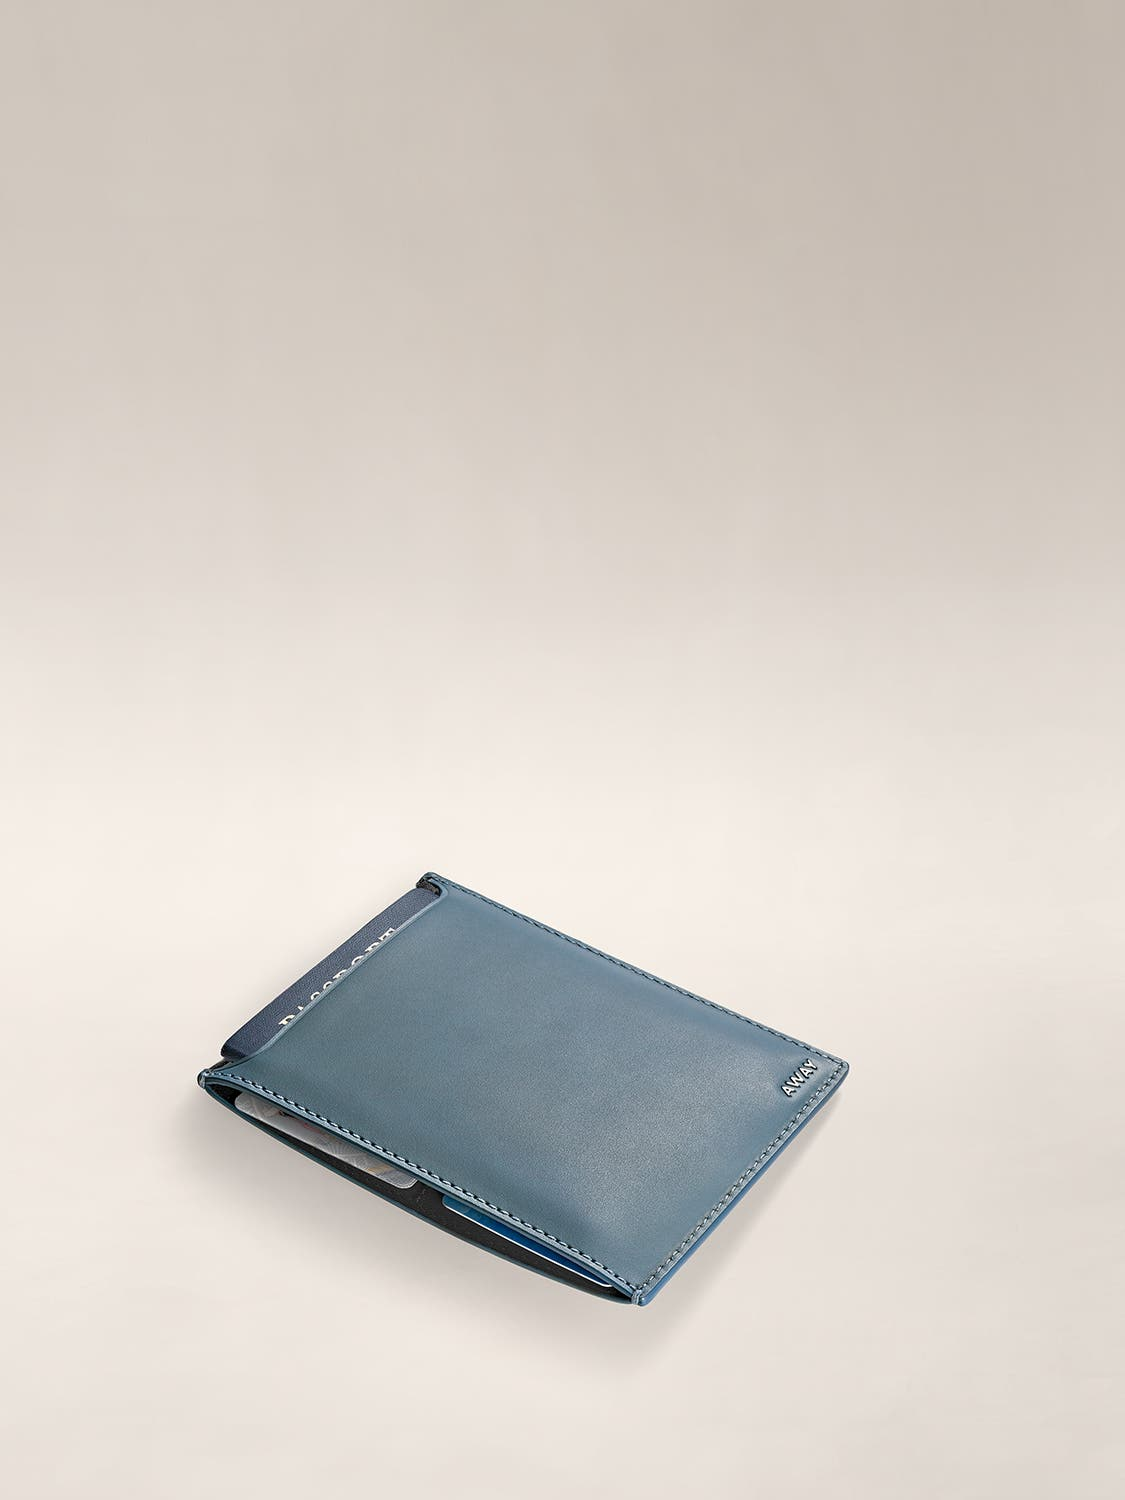 Horizontal view of a slim passport holder with documents inside.